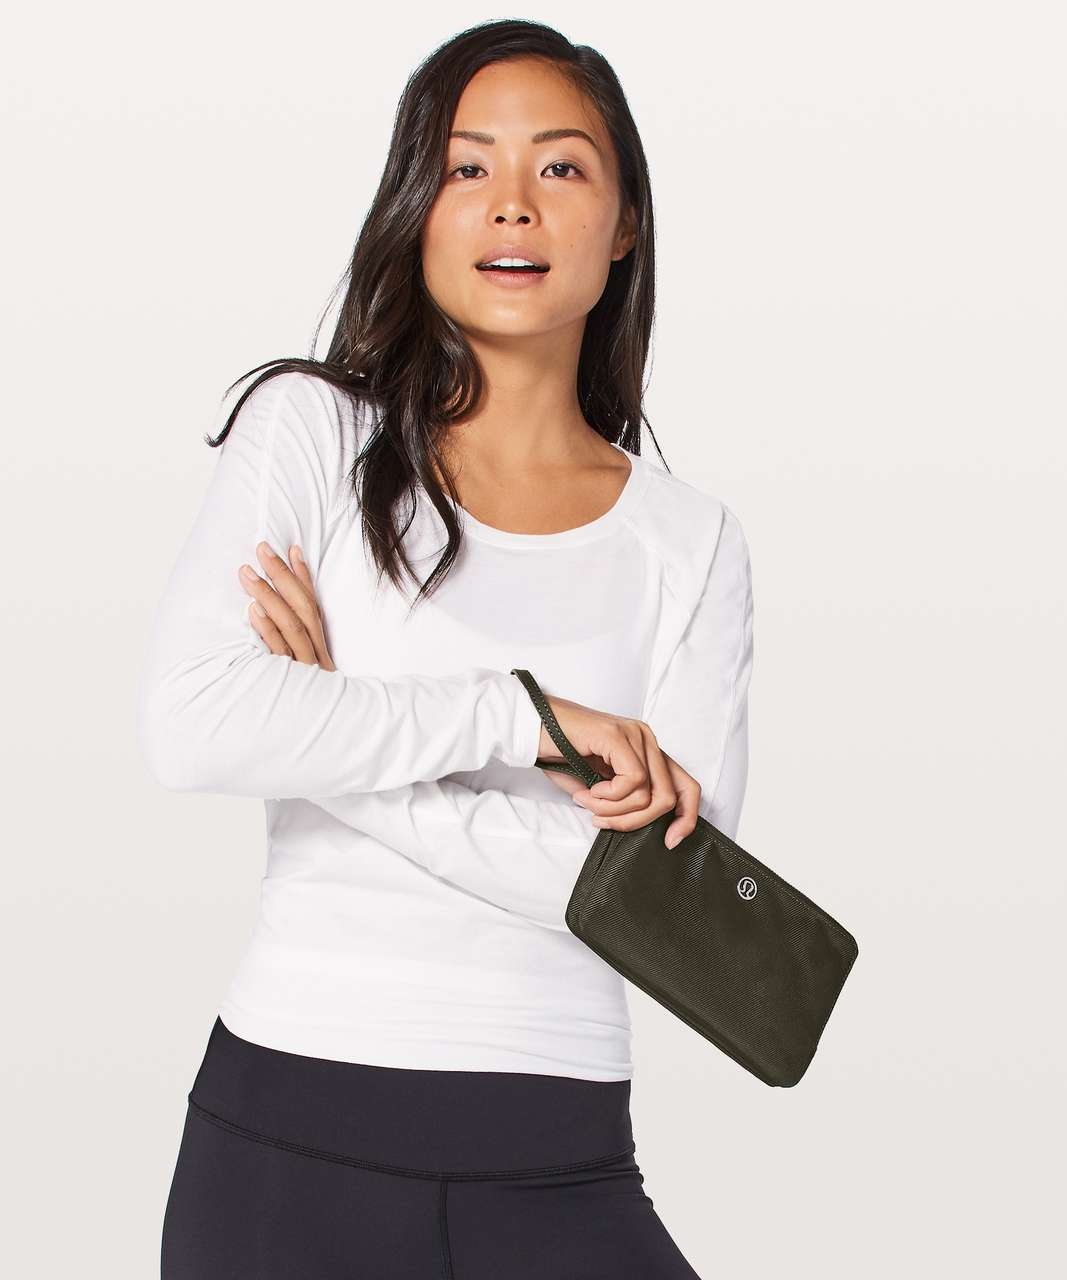 Lululemon Double Up Pouch - Dark Olive